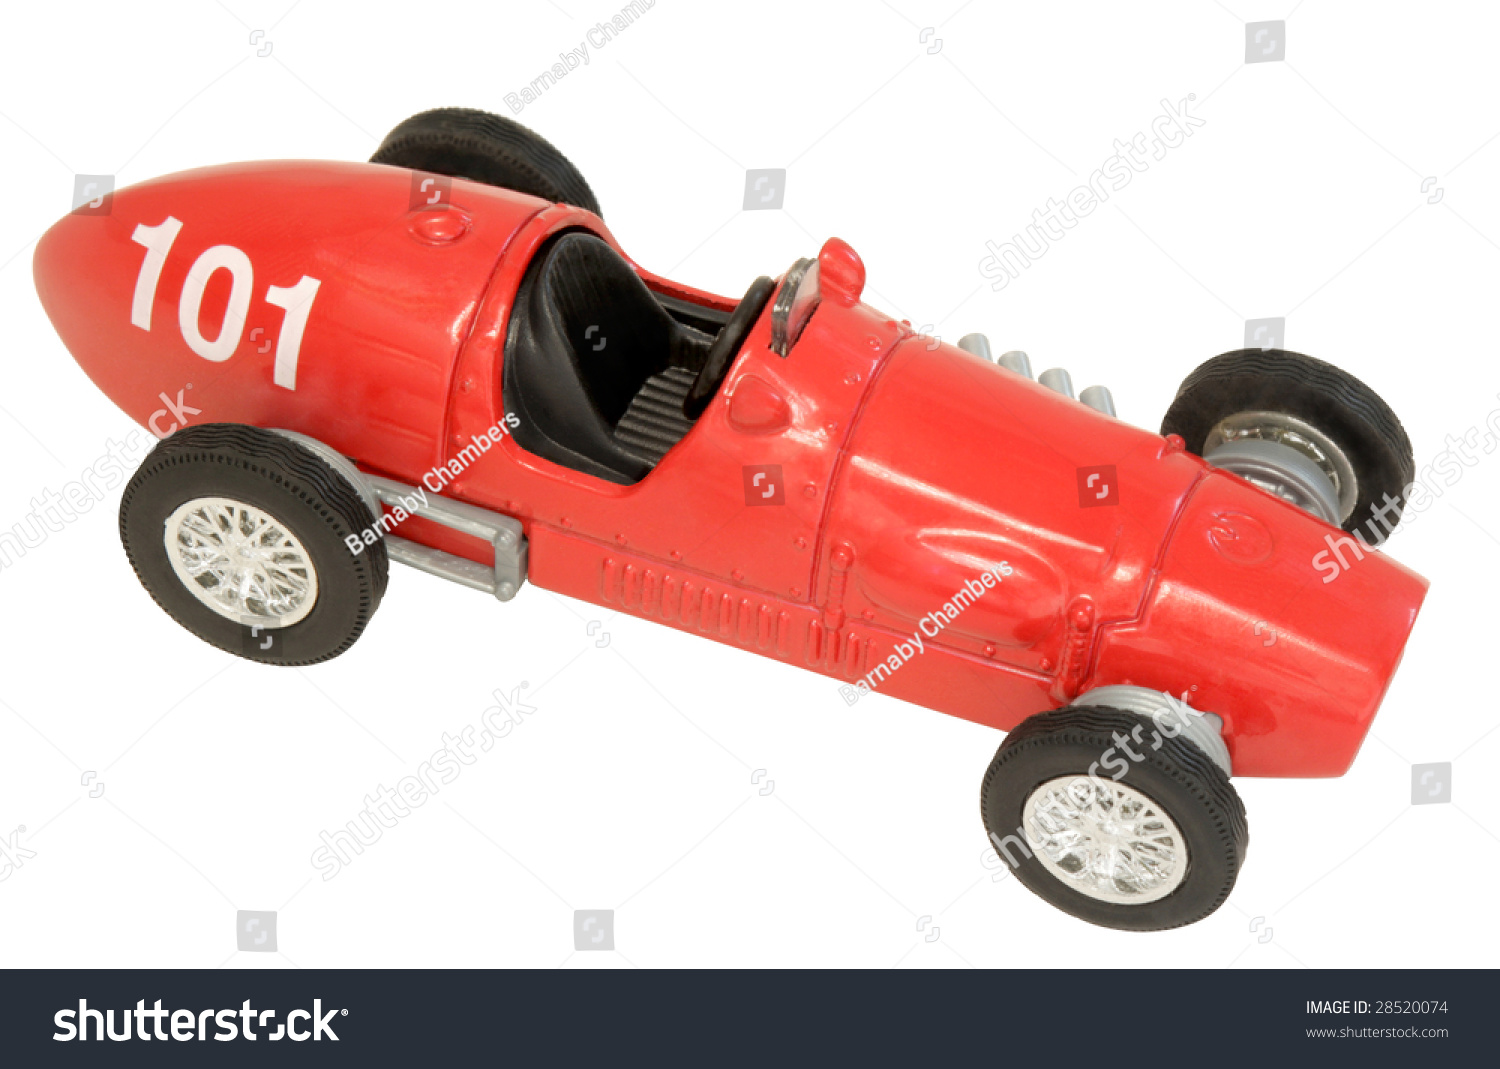 Old Fashioned Toy Racing Car Stock Photo (Royalty Free) 28520074 ...